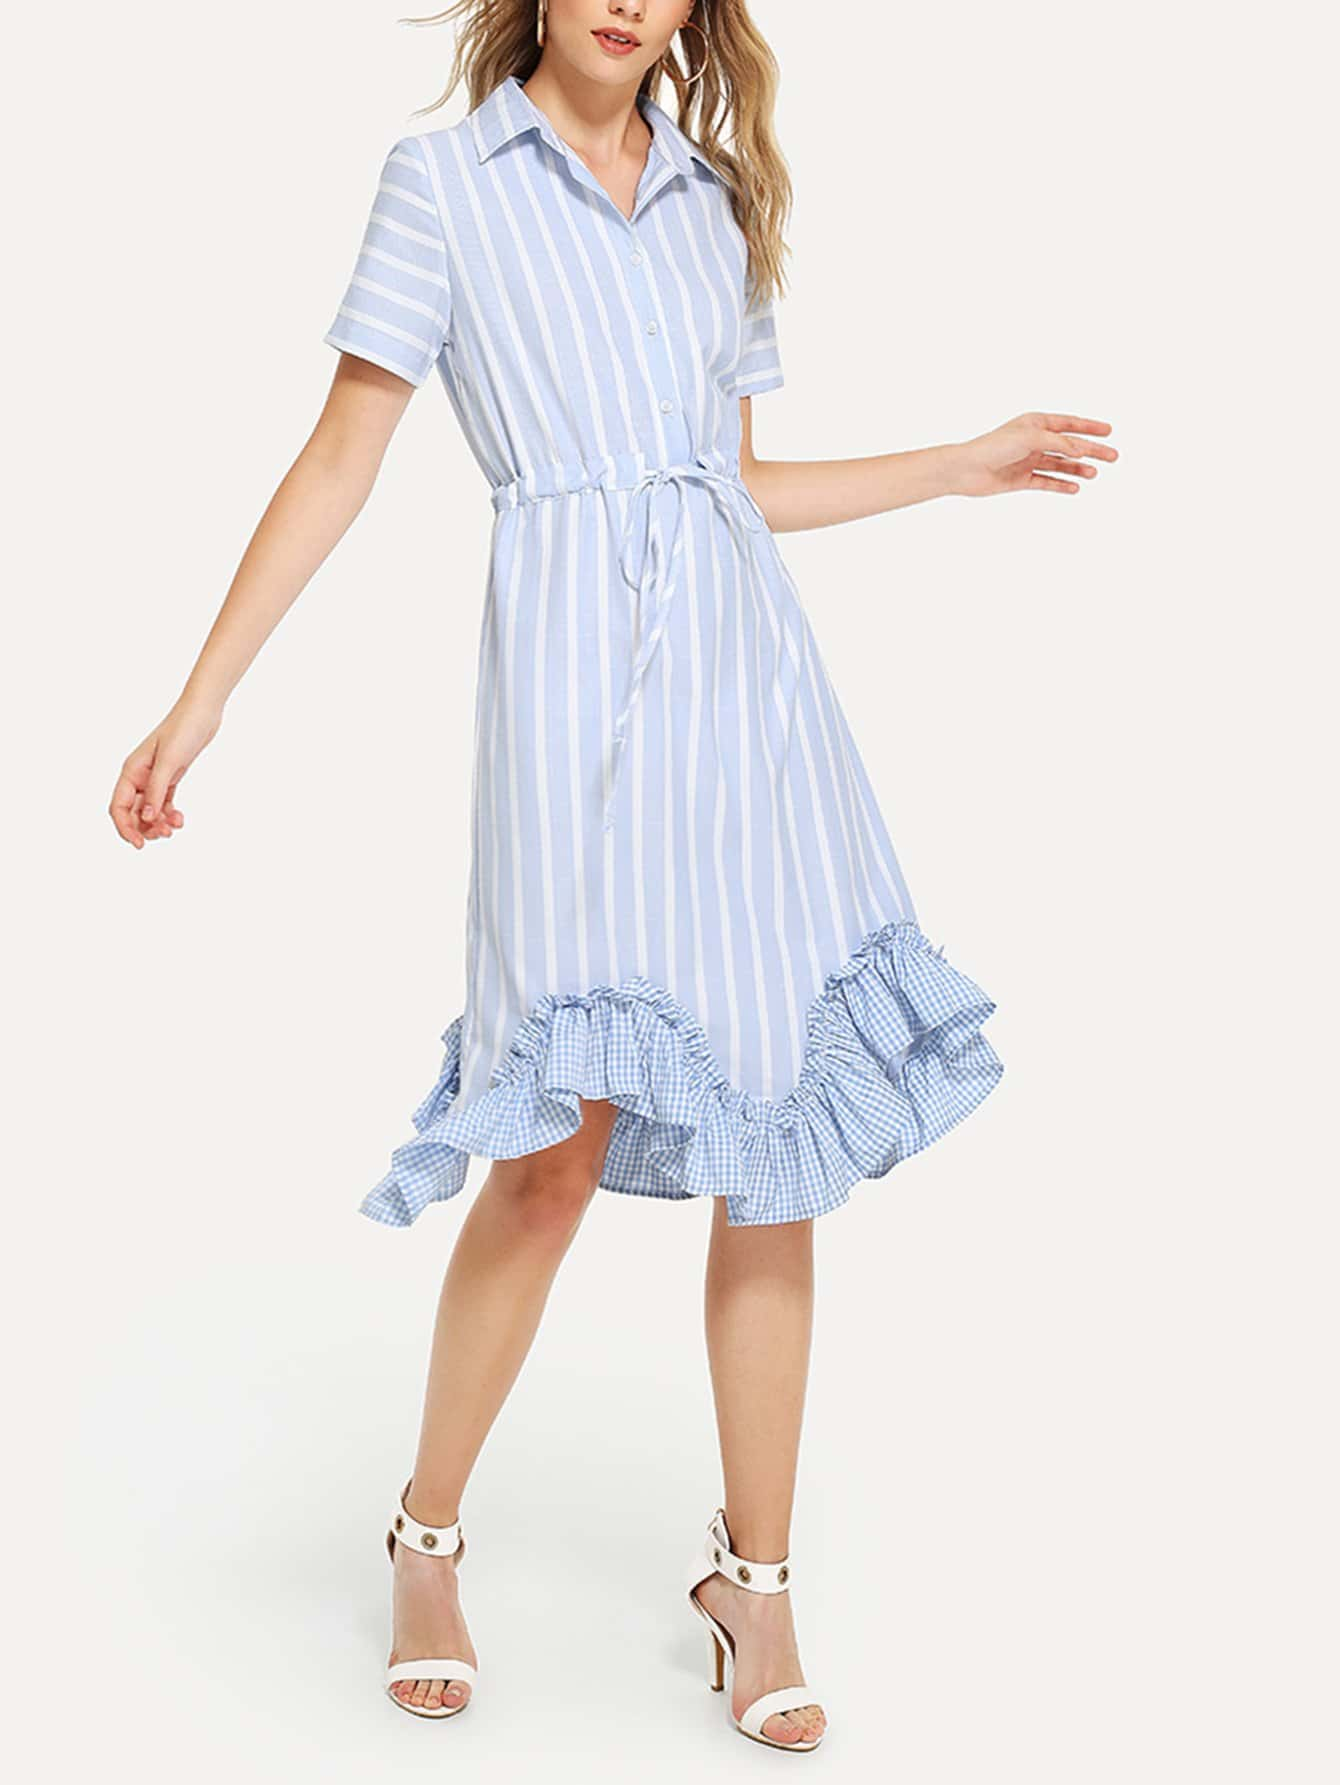 где купить Ruffle Hem Drawstring Waist Striped Dress дешево